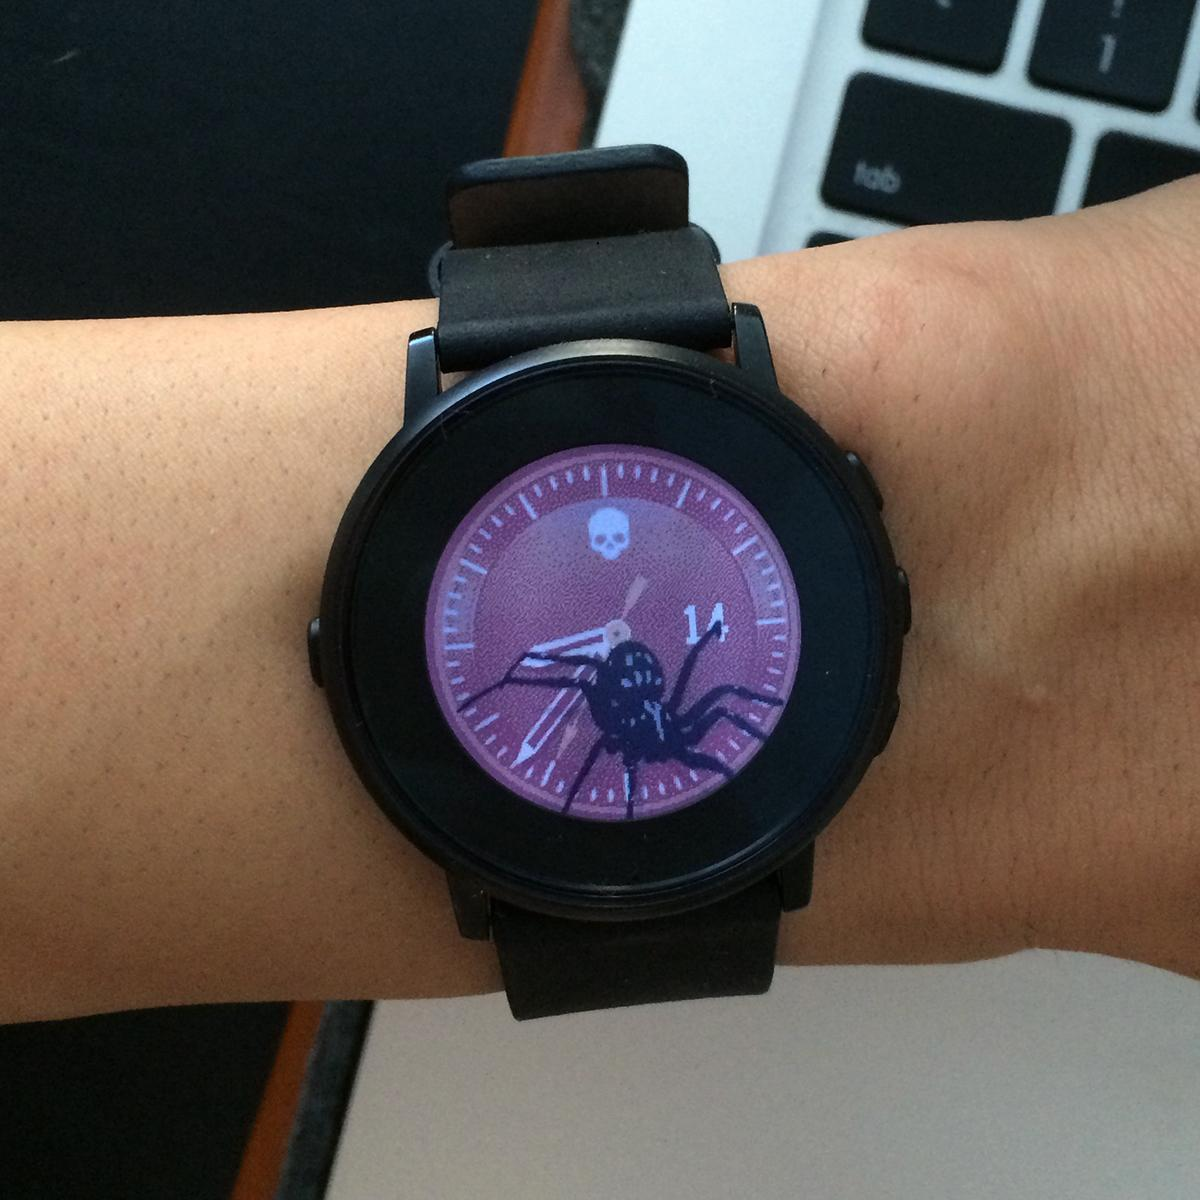 Shake Pebble with Creepy watch faces and a spider crawls